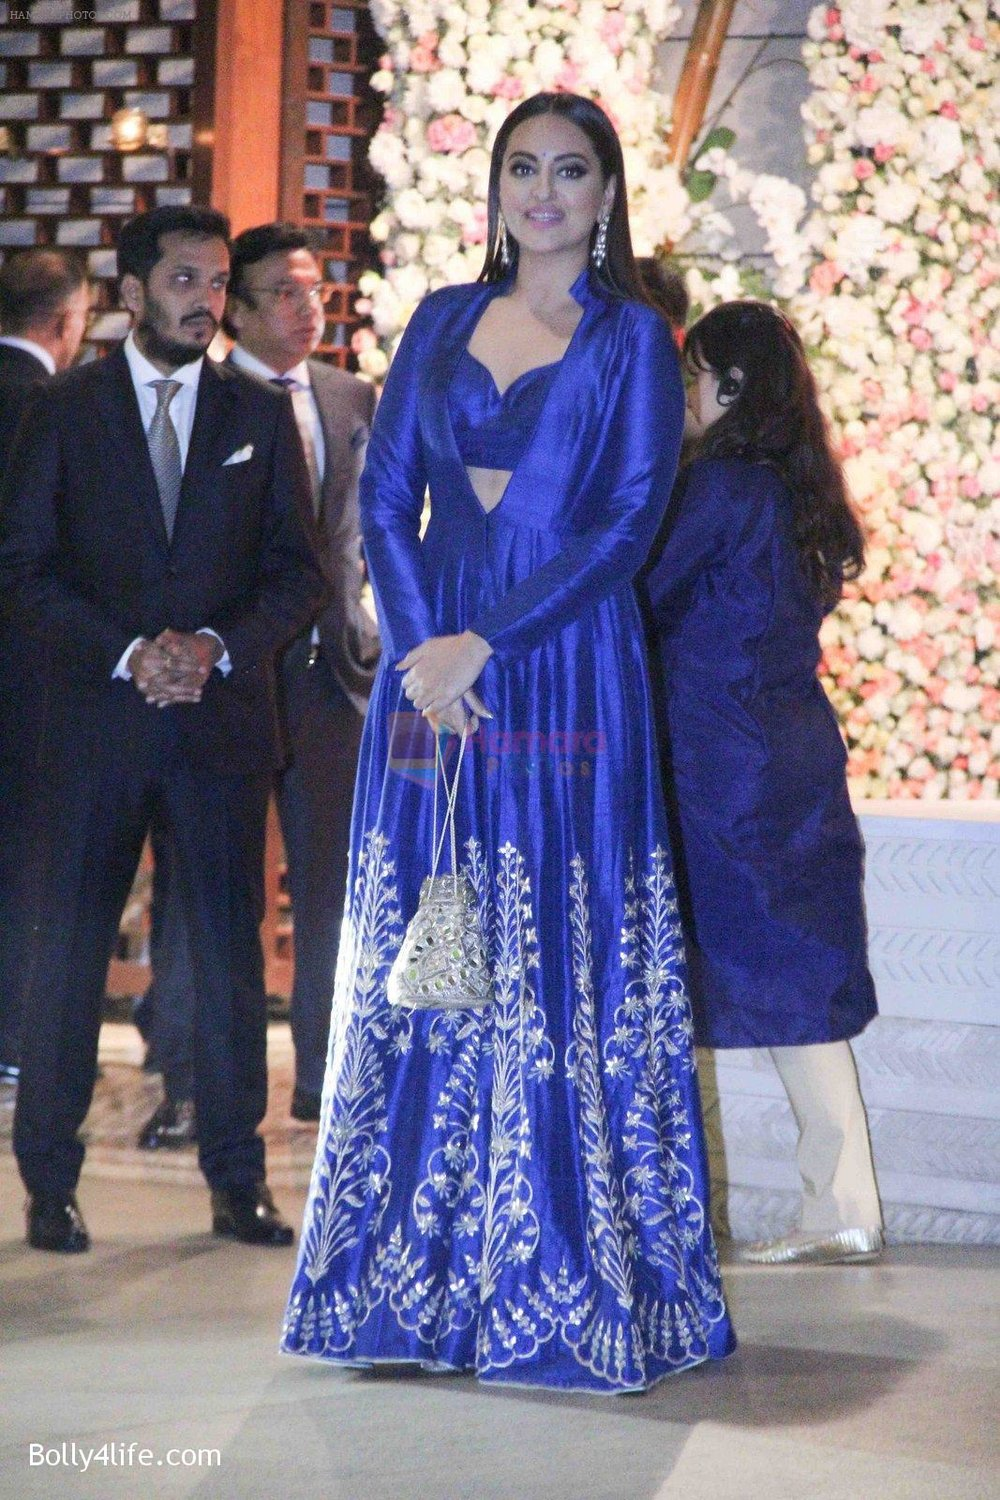 Sonakshi-Sinha-at-the-Ambanis-wedding-party-of-their-niece-Isheta-Salgaoncar-3.jpg